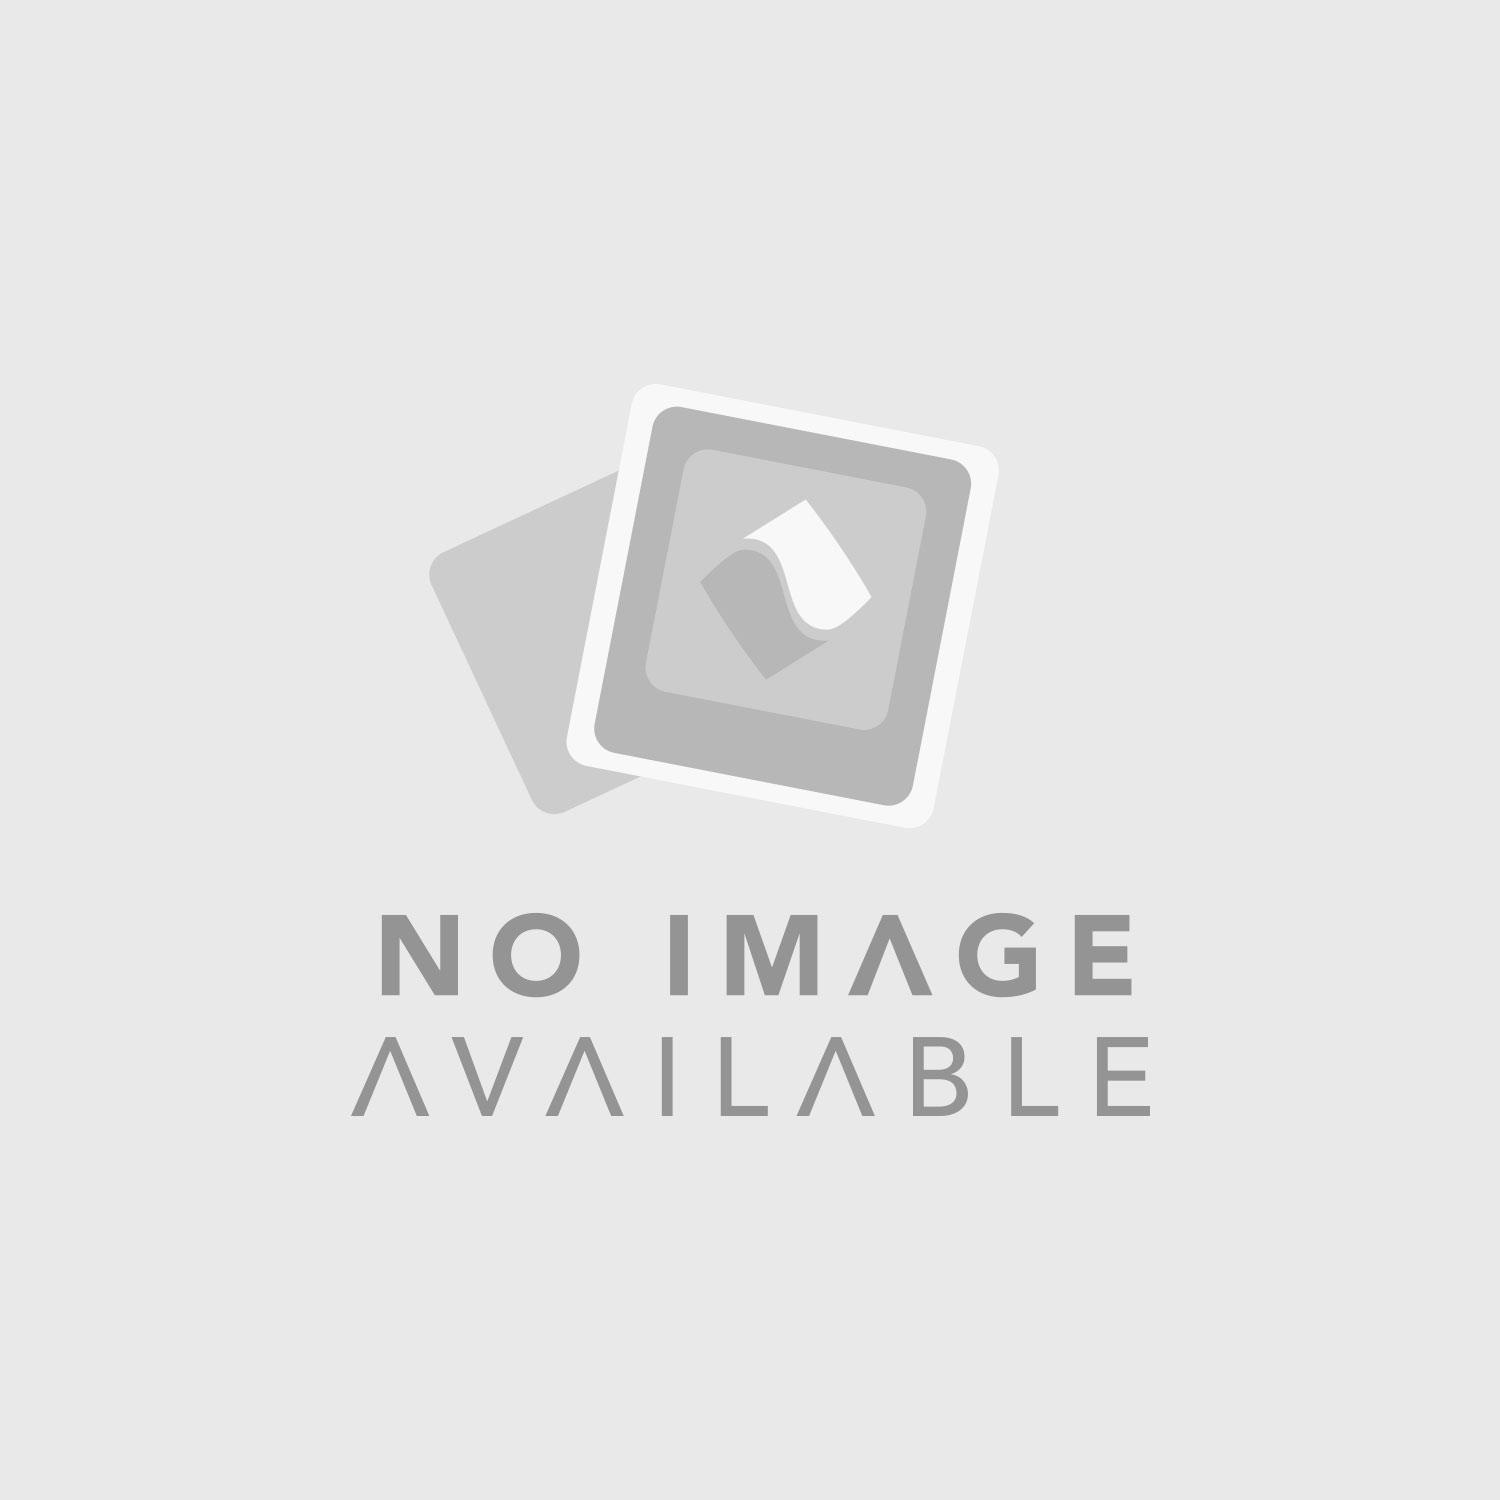 D'Addario EXL116 Electric Guitar Strings (11-52)